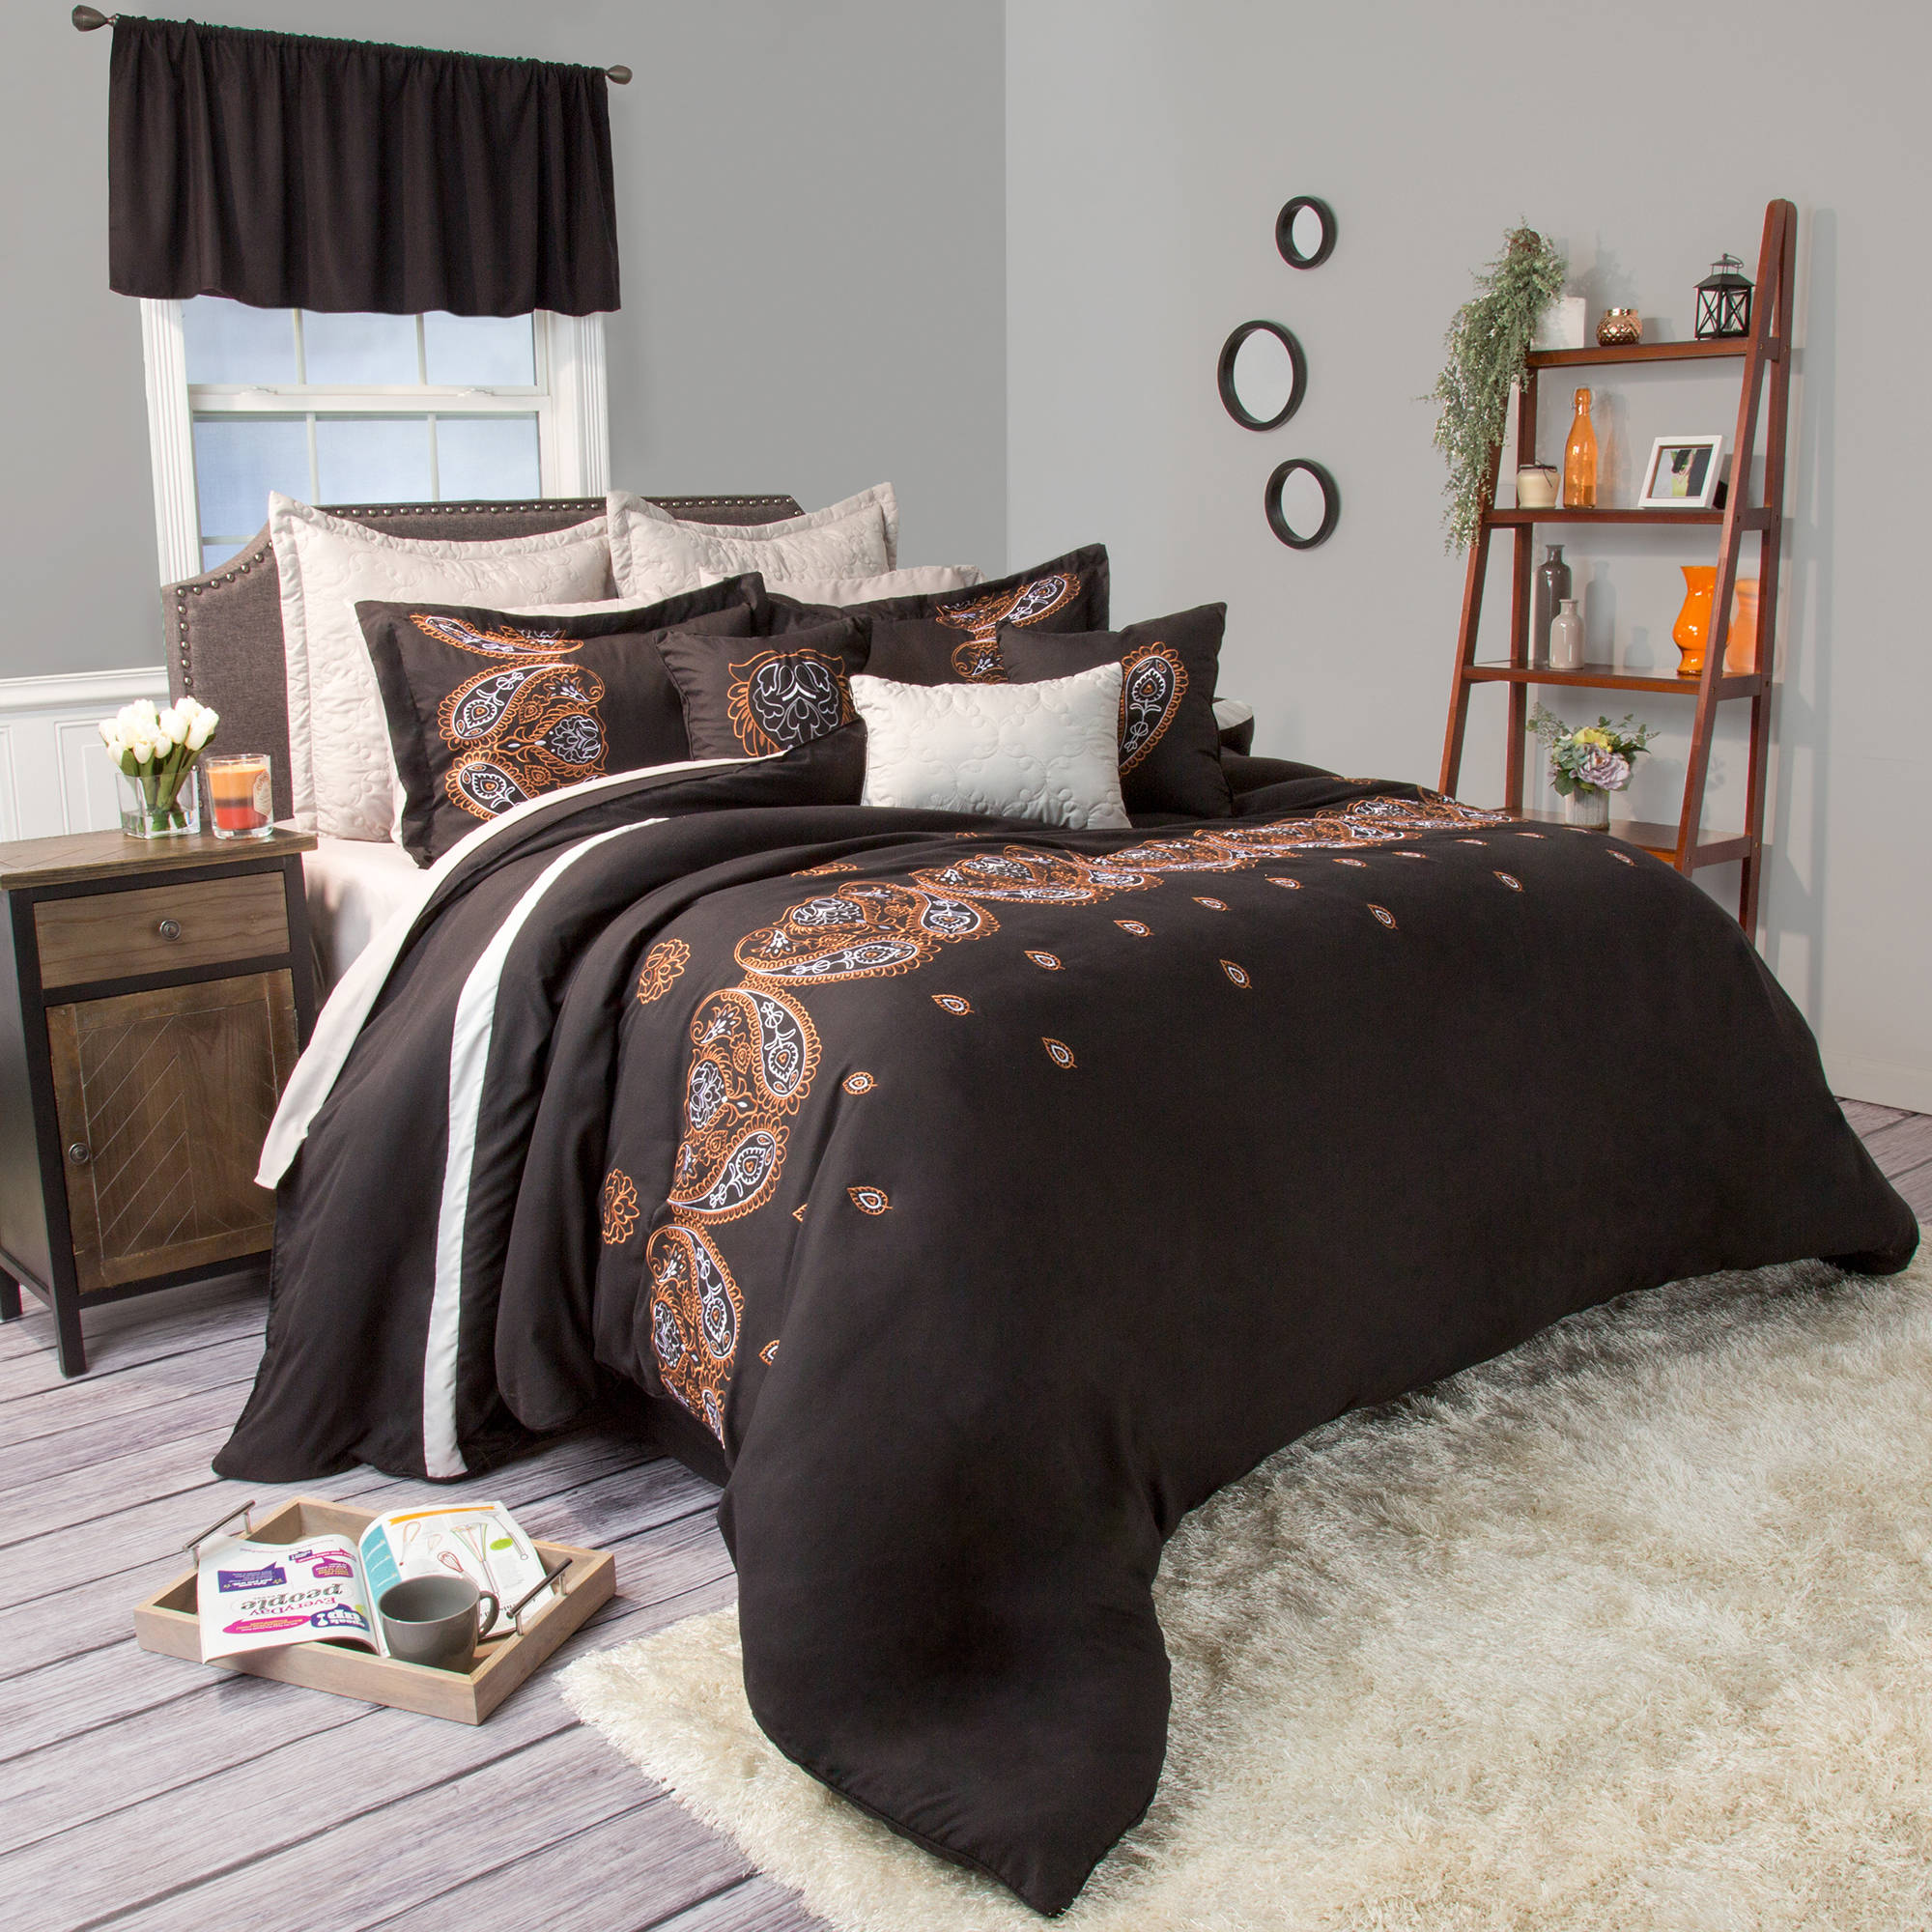 comforter margate bed nautica sets king xl twin comforters